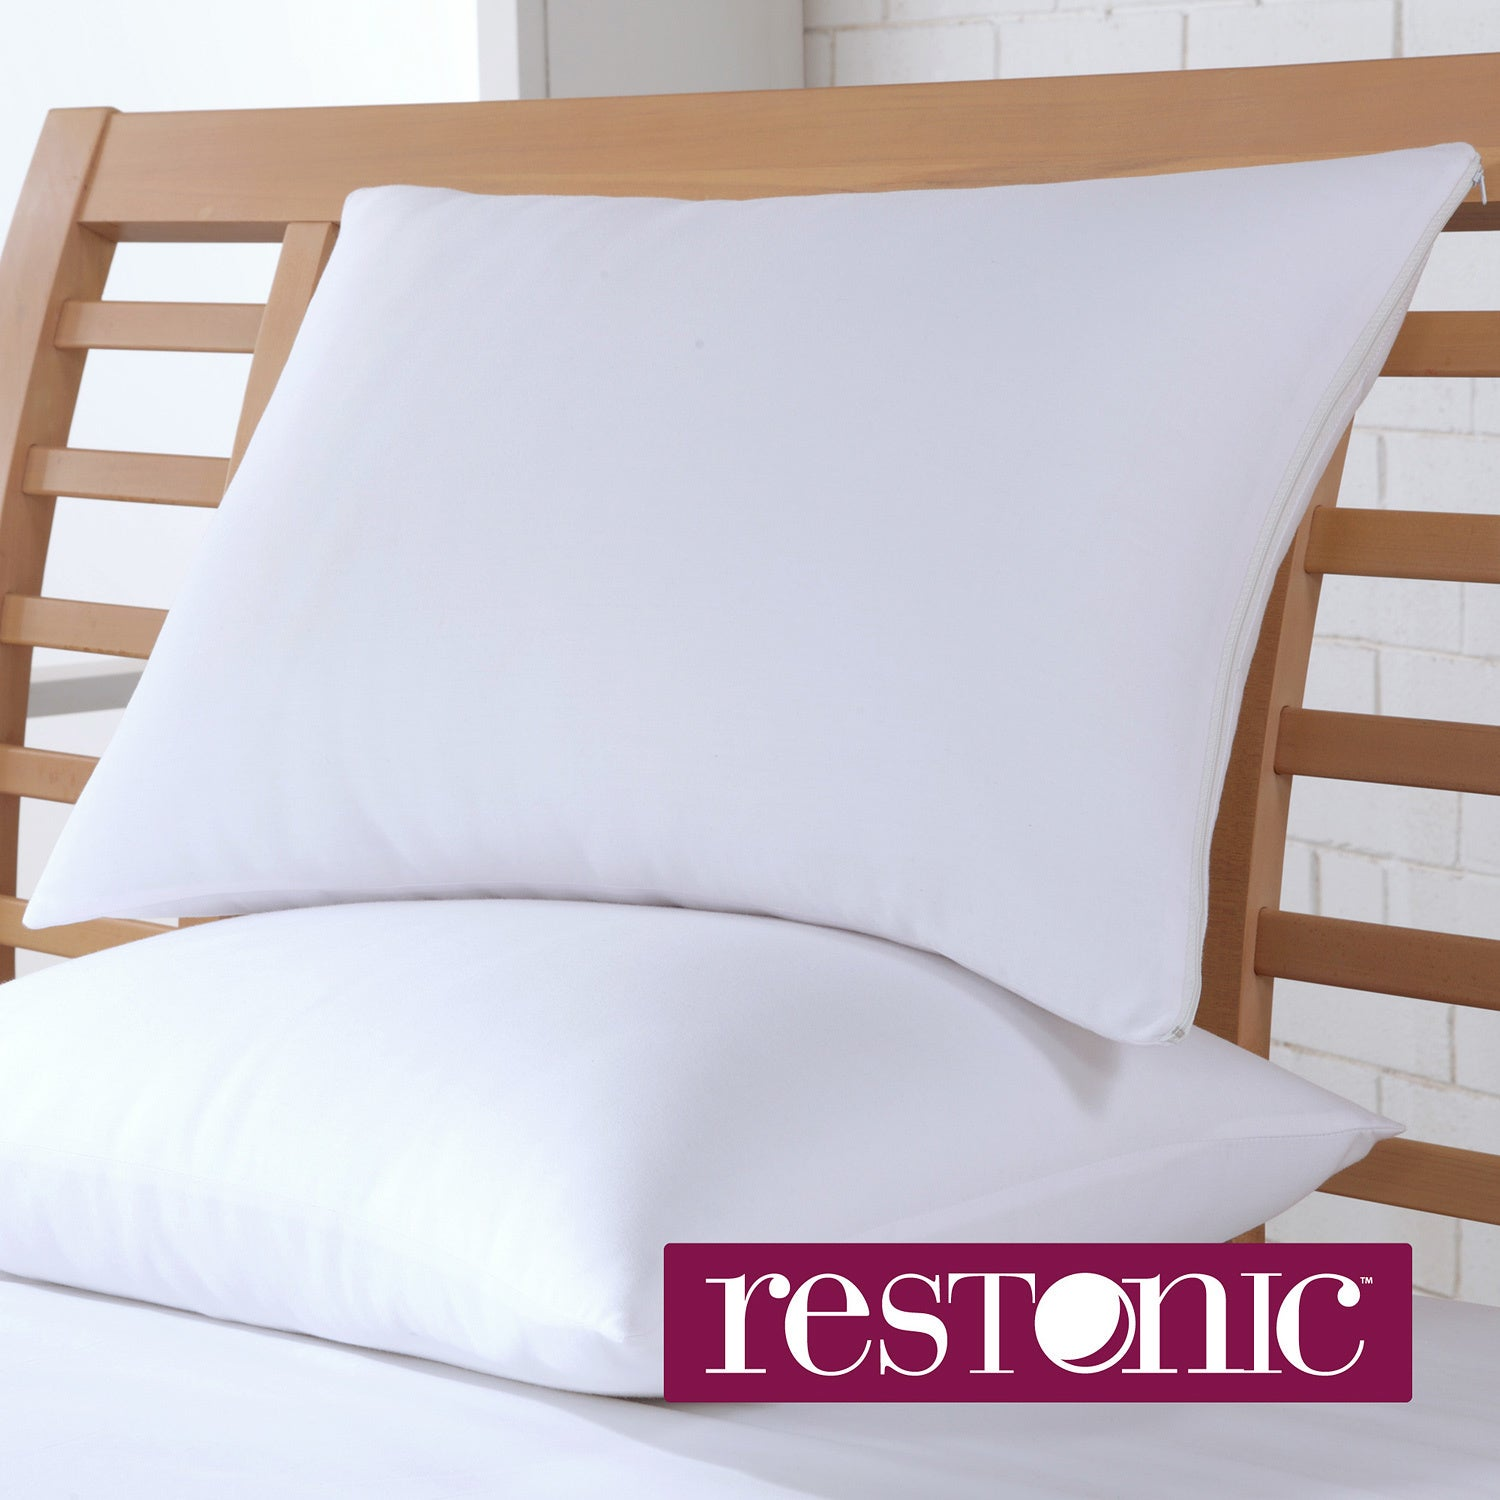 Restonic Cotton Bed Pillow Protector (Set of 2) at Sears.com